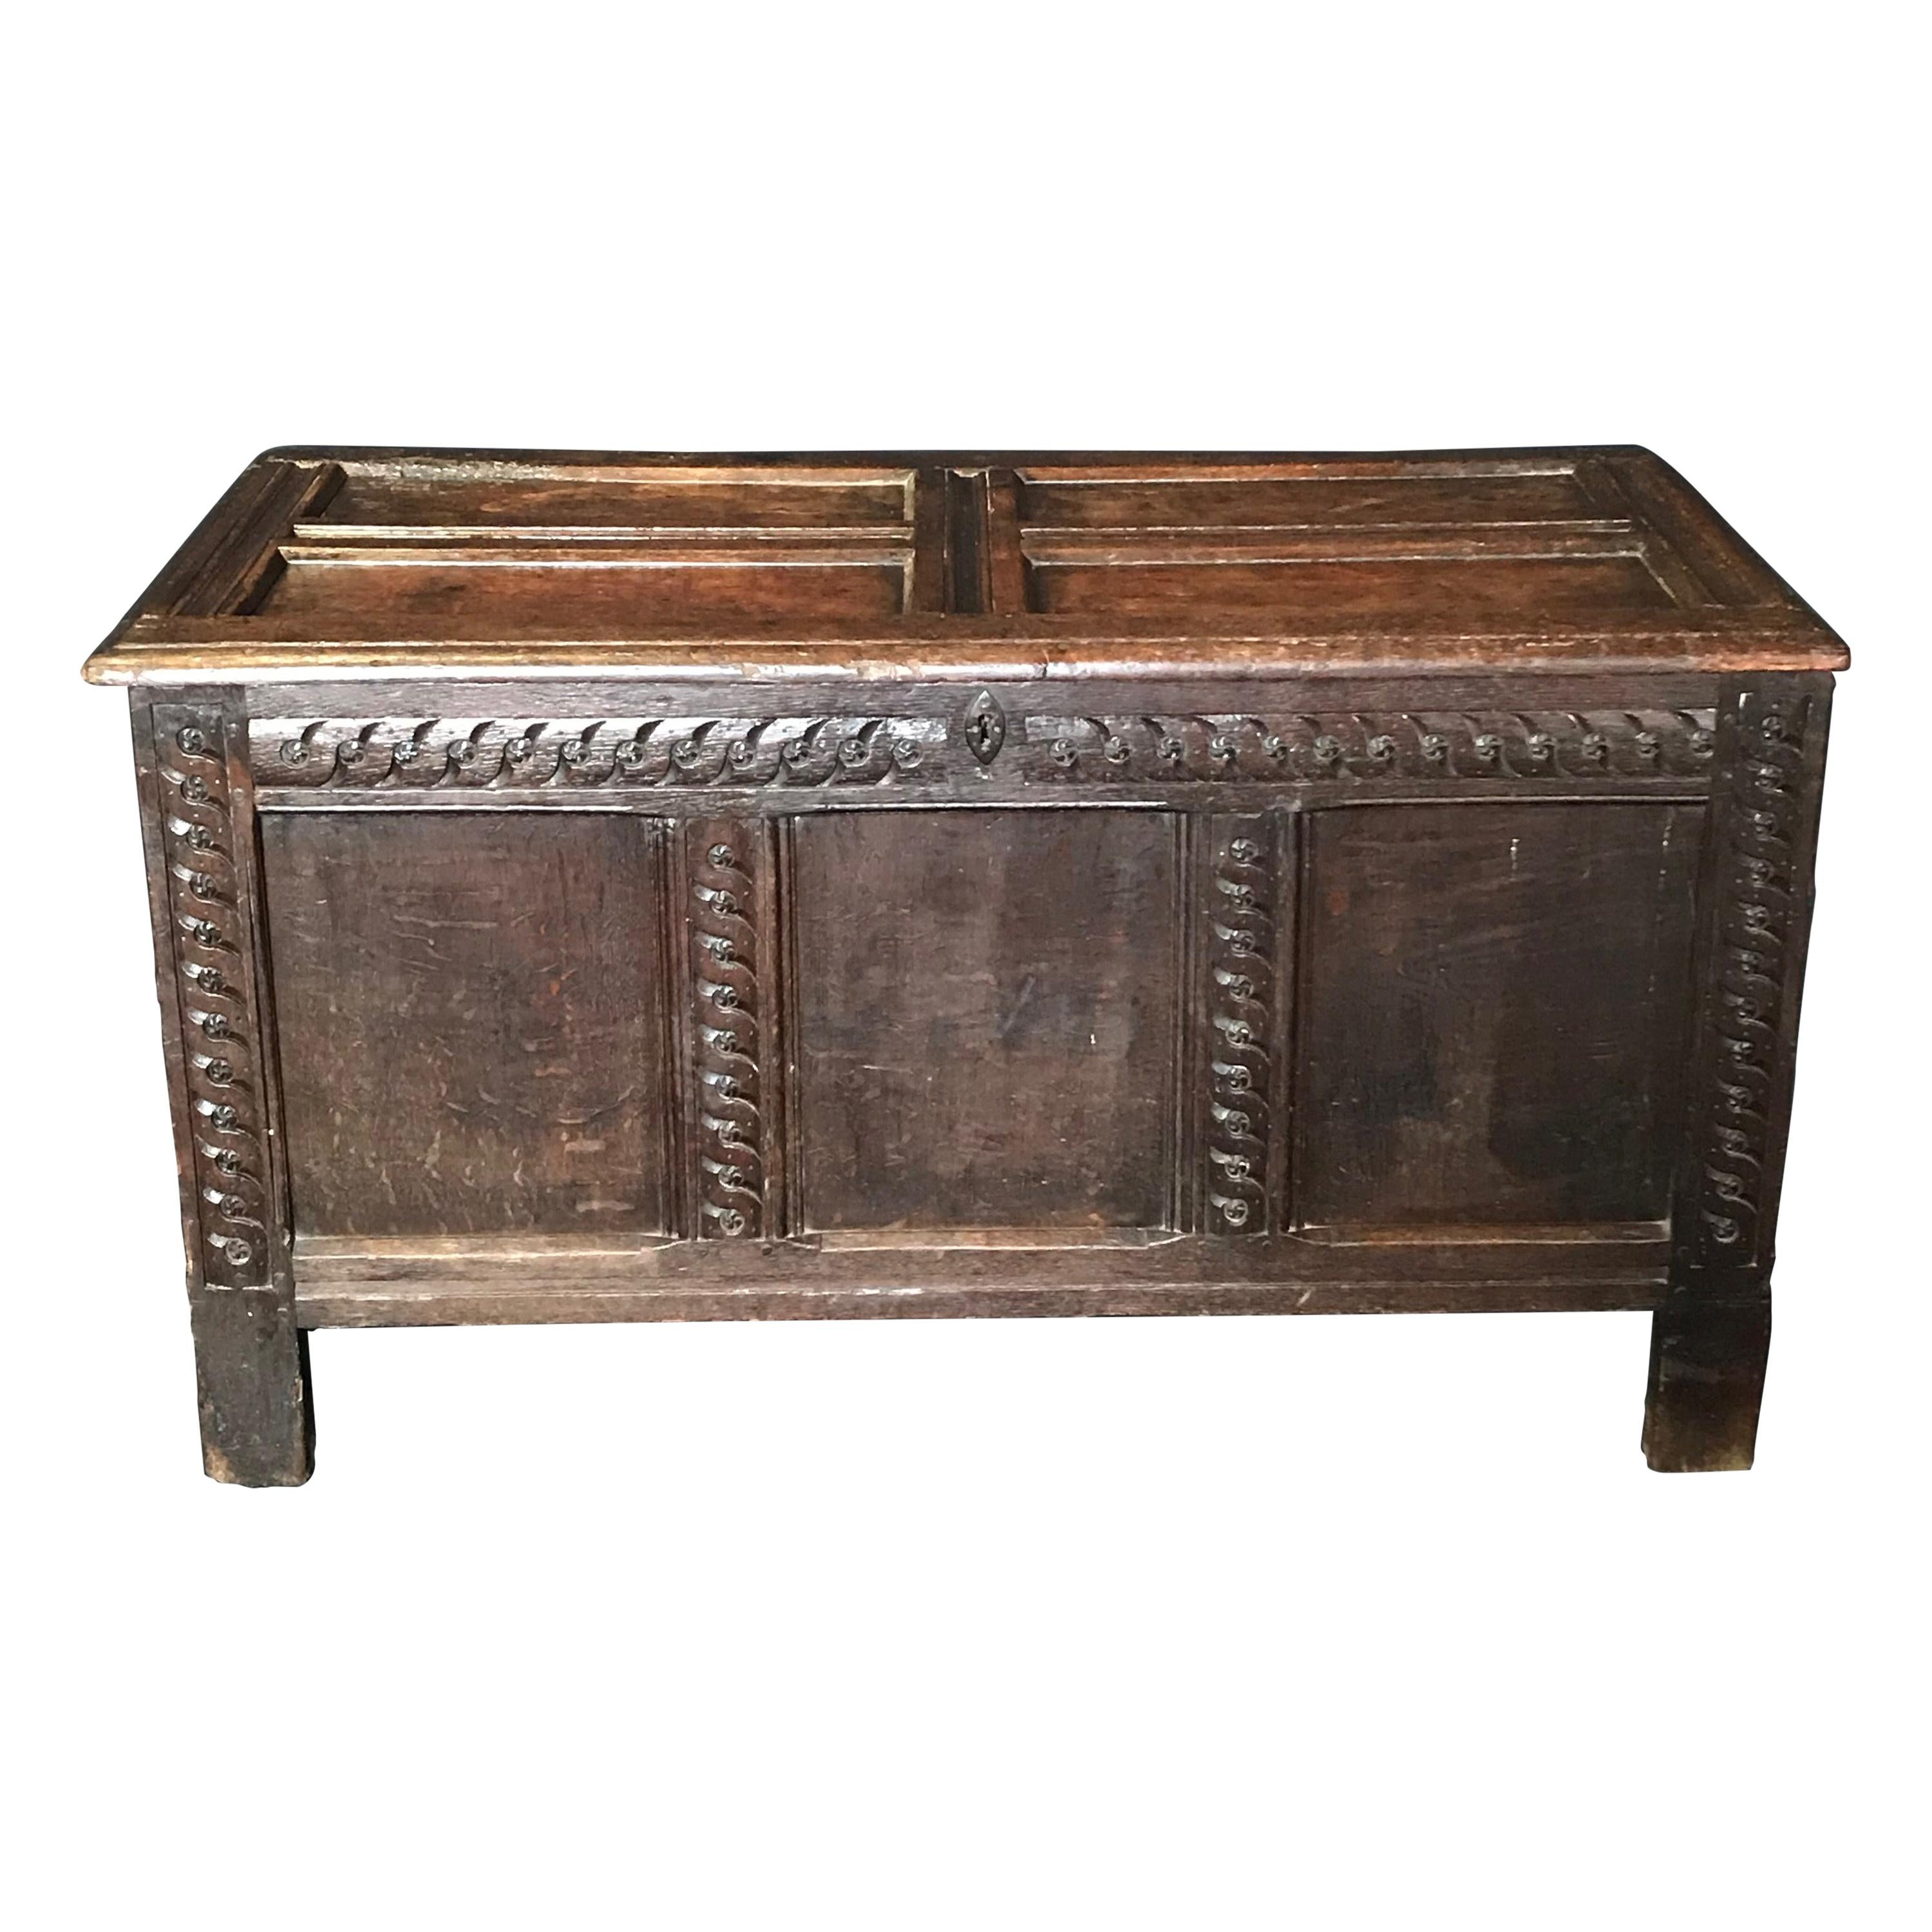 Rare Antique 18th Century Paneled and Carved Scottish Coffer Chest